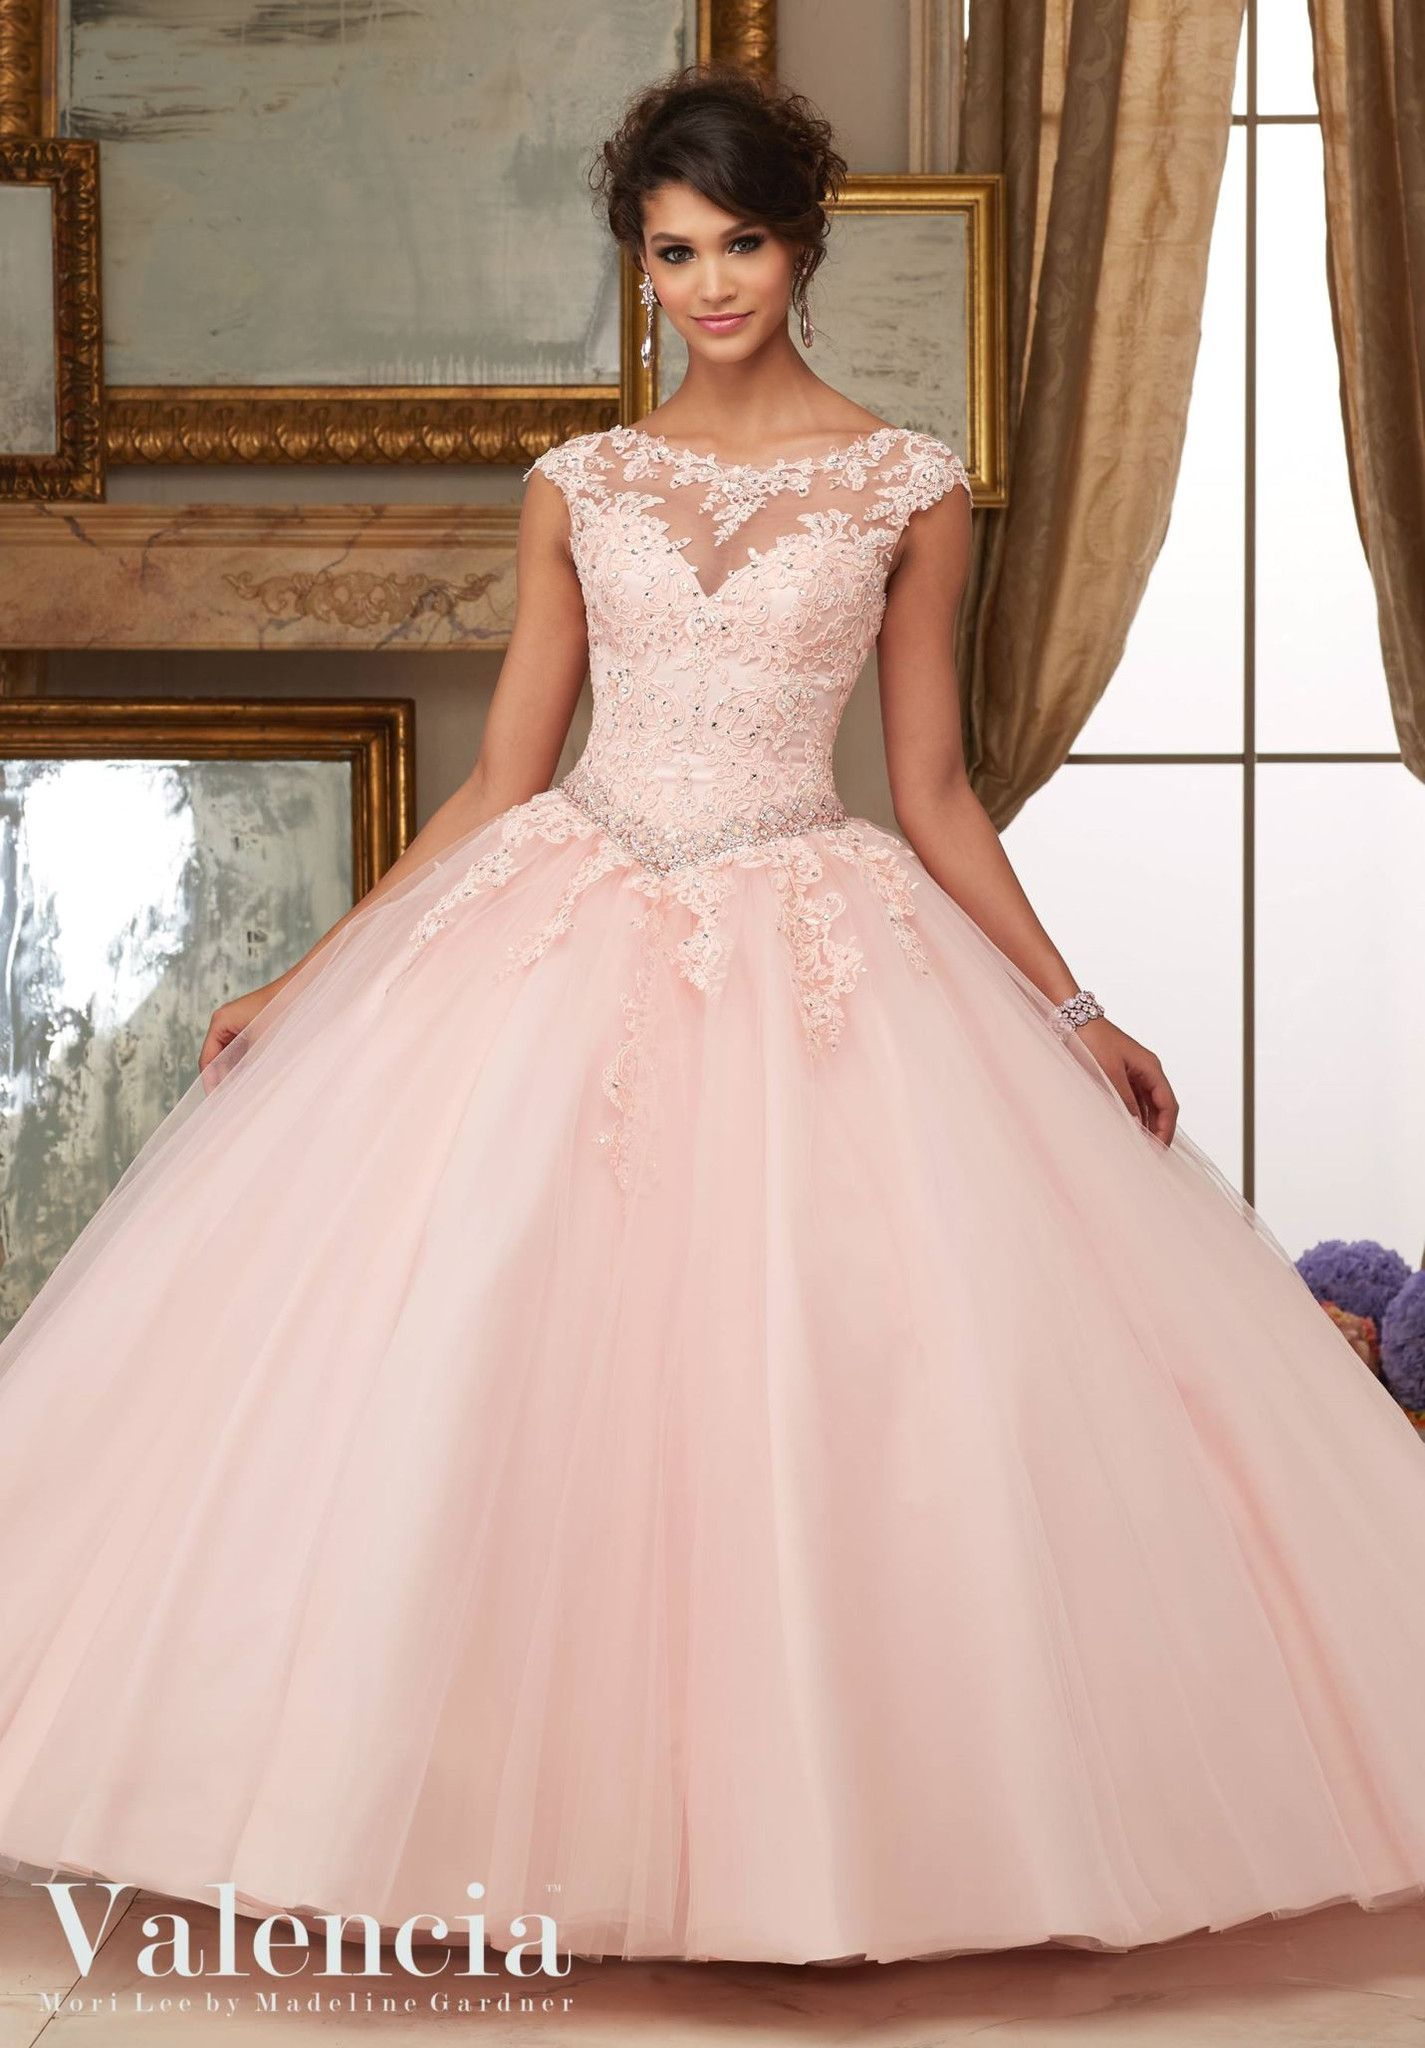 Mori Lee Valencia Quinceanera Dress 60006 | Pinterest | 15 años ...